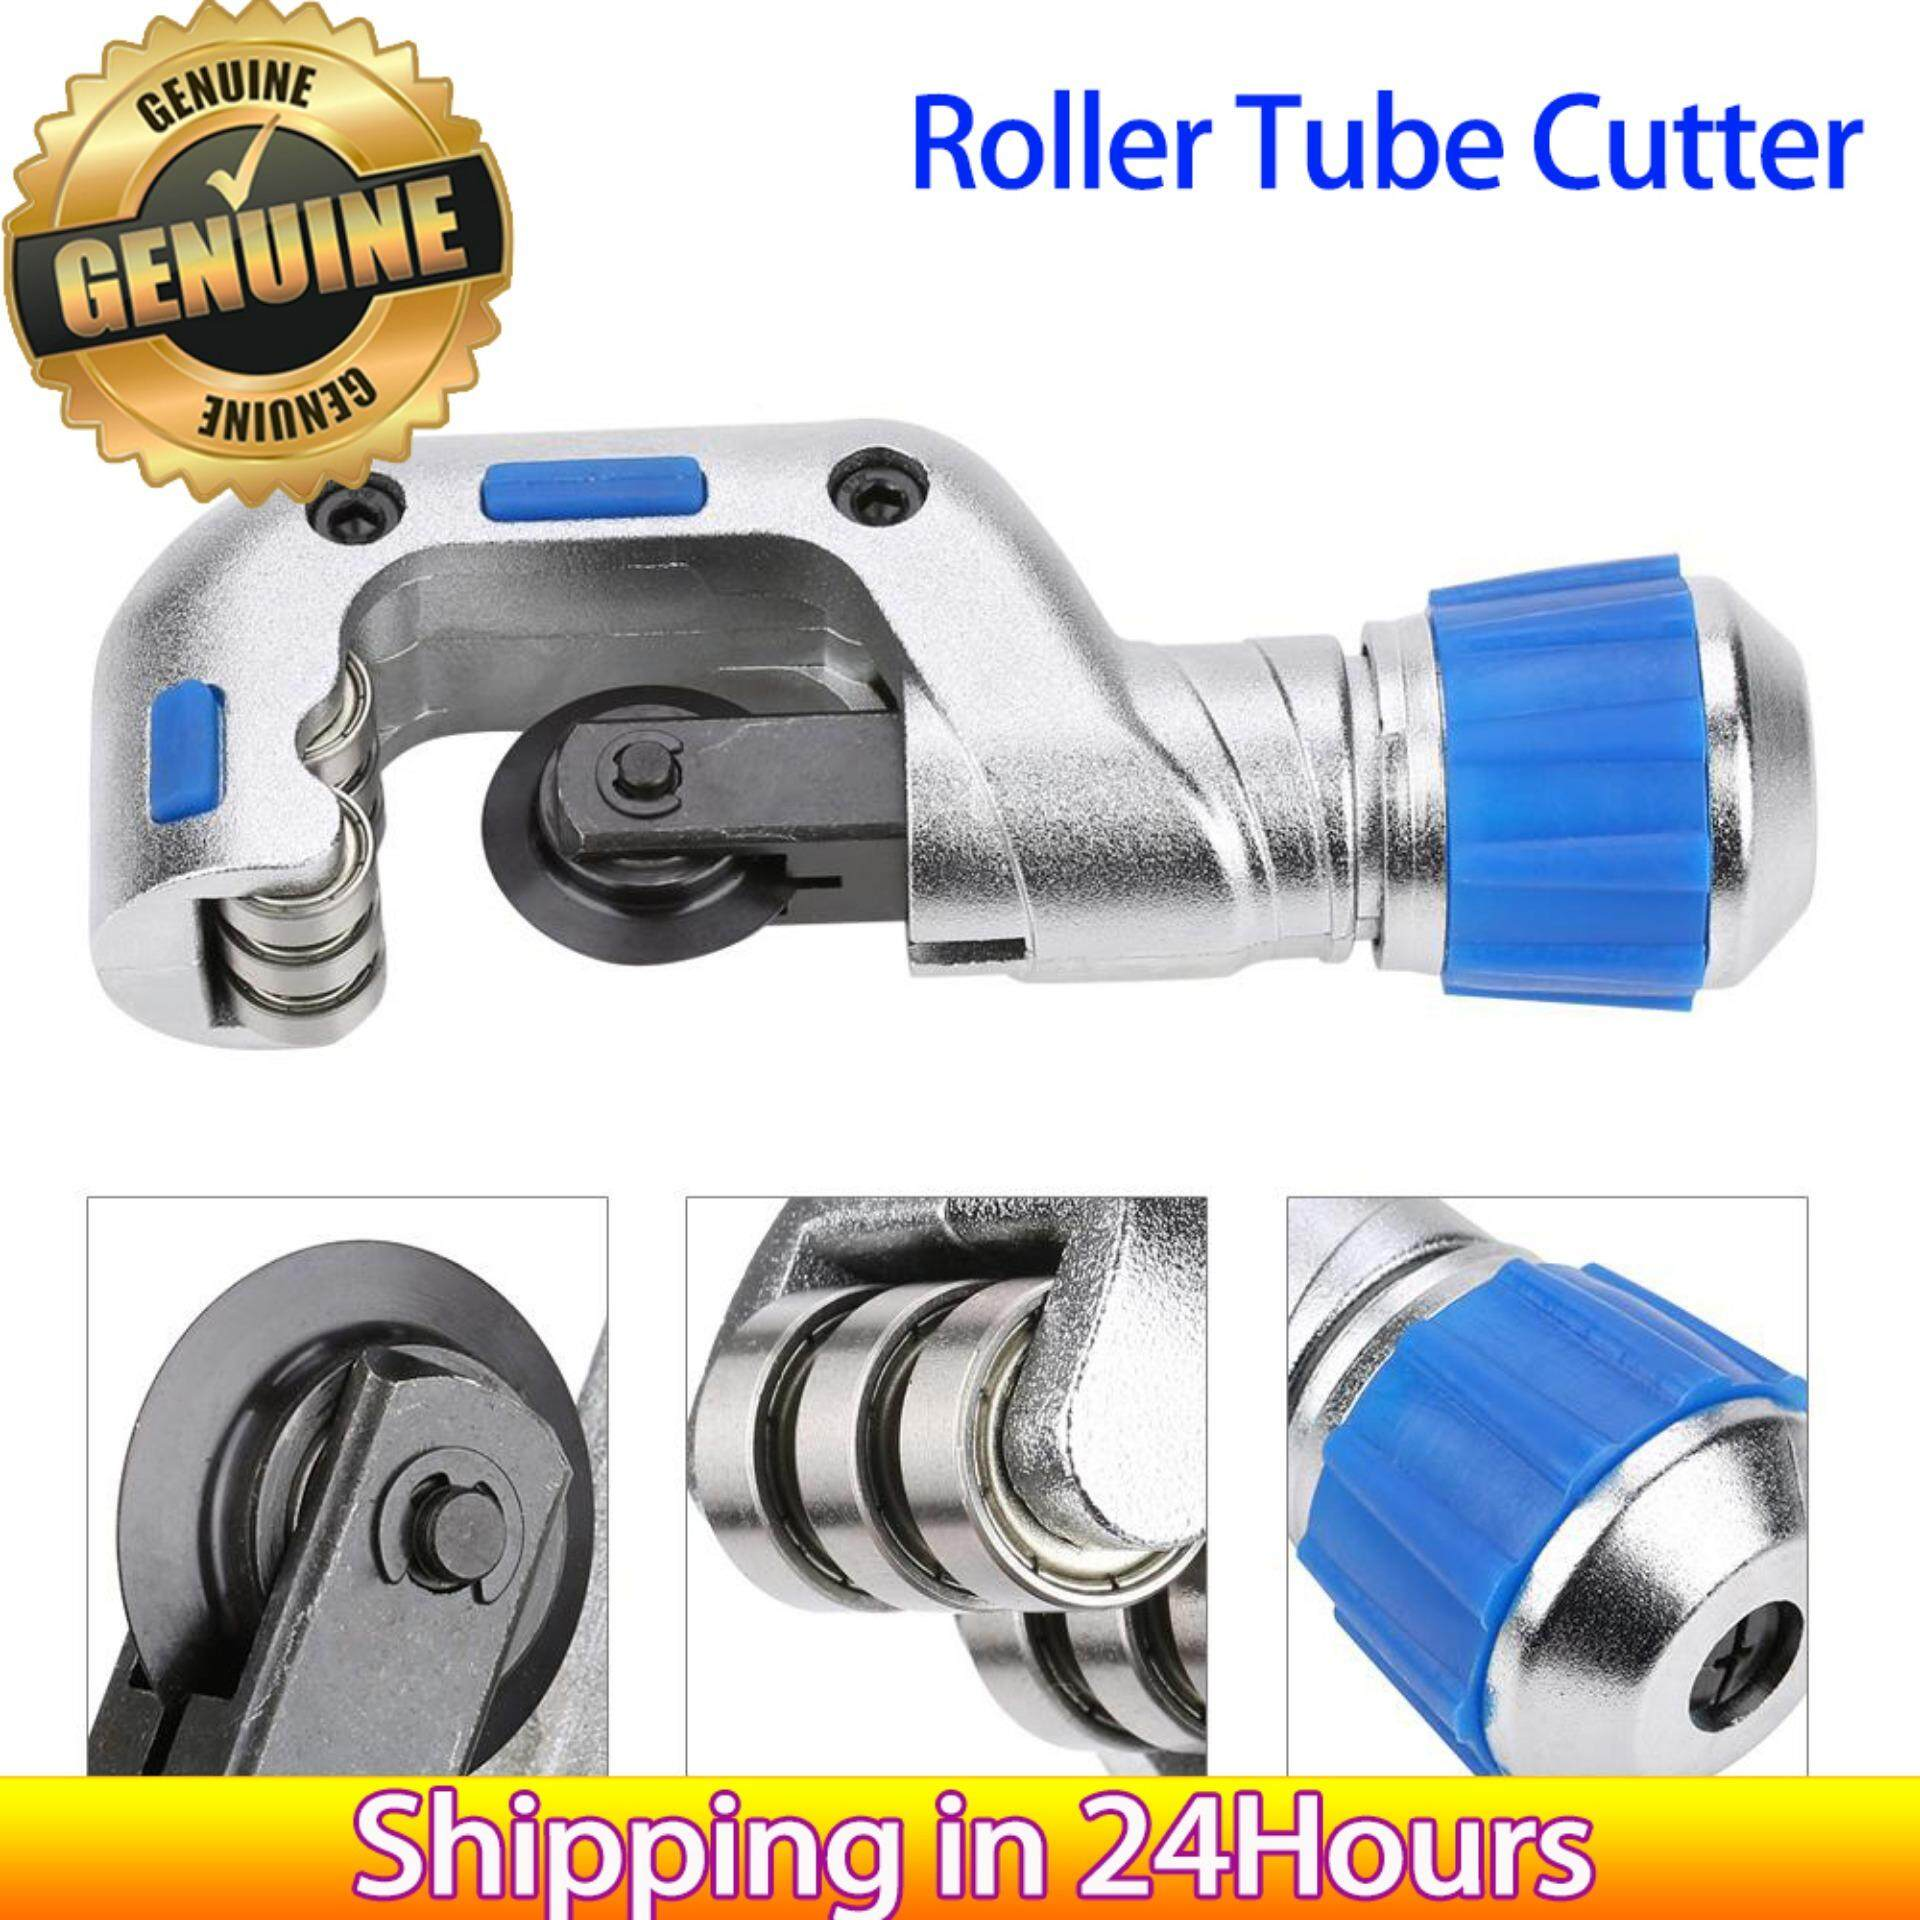 5-50mm Ball Bearing Pipe Cutter Tube Cutting Tool for Copper Aluminum Stainless Steel Cutter Ball Bearing Heavy Duty